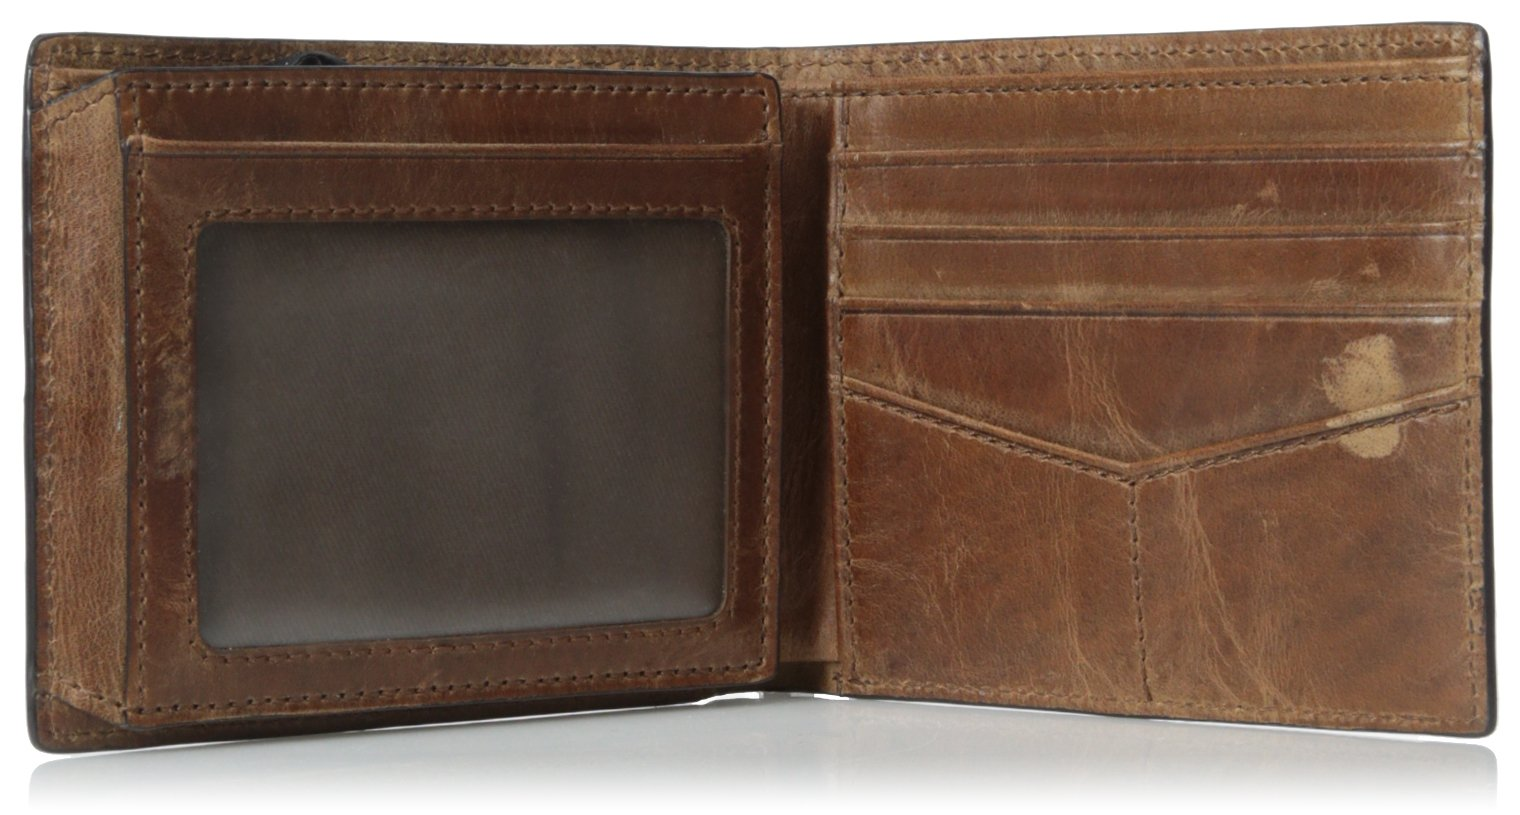 Fossil Men's RFID Flip ID Bifold Wallet, Brown, One Size by Fossil (Image #4)